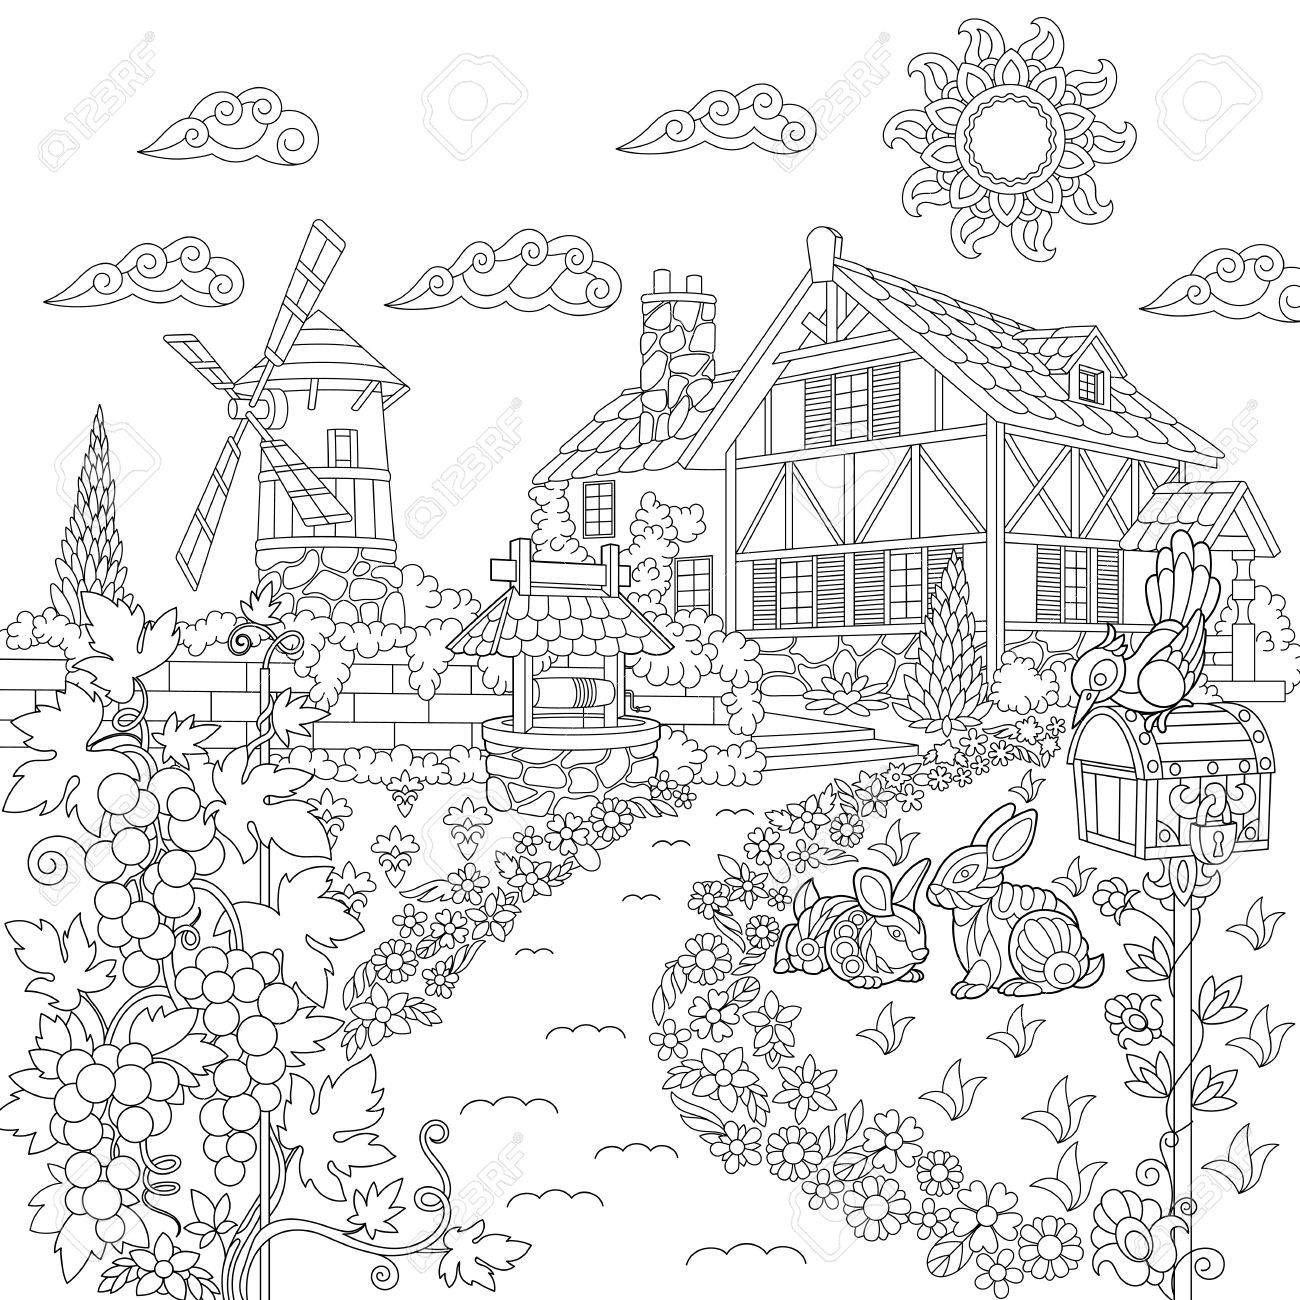 Coloring Book Page Of Rural Landscape. Farm House, Windmill ...